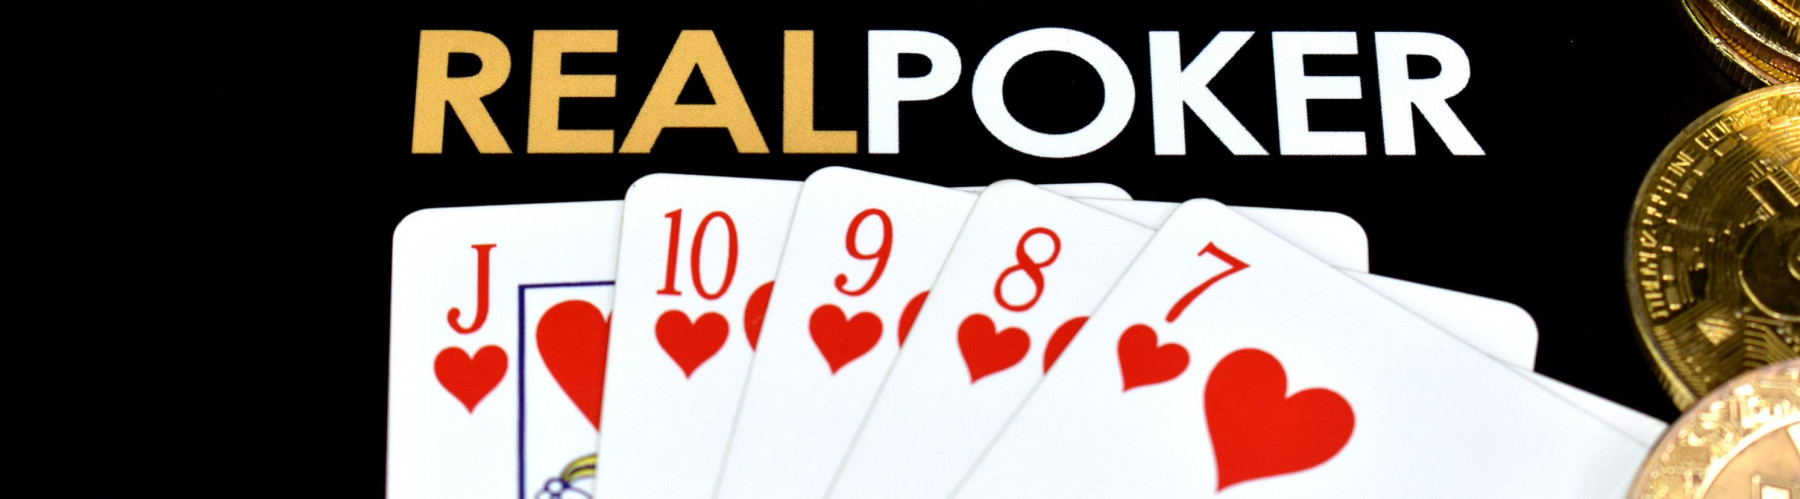 From The Experts: Become A Great Poker Player